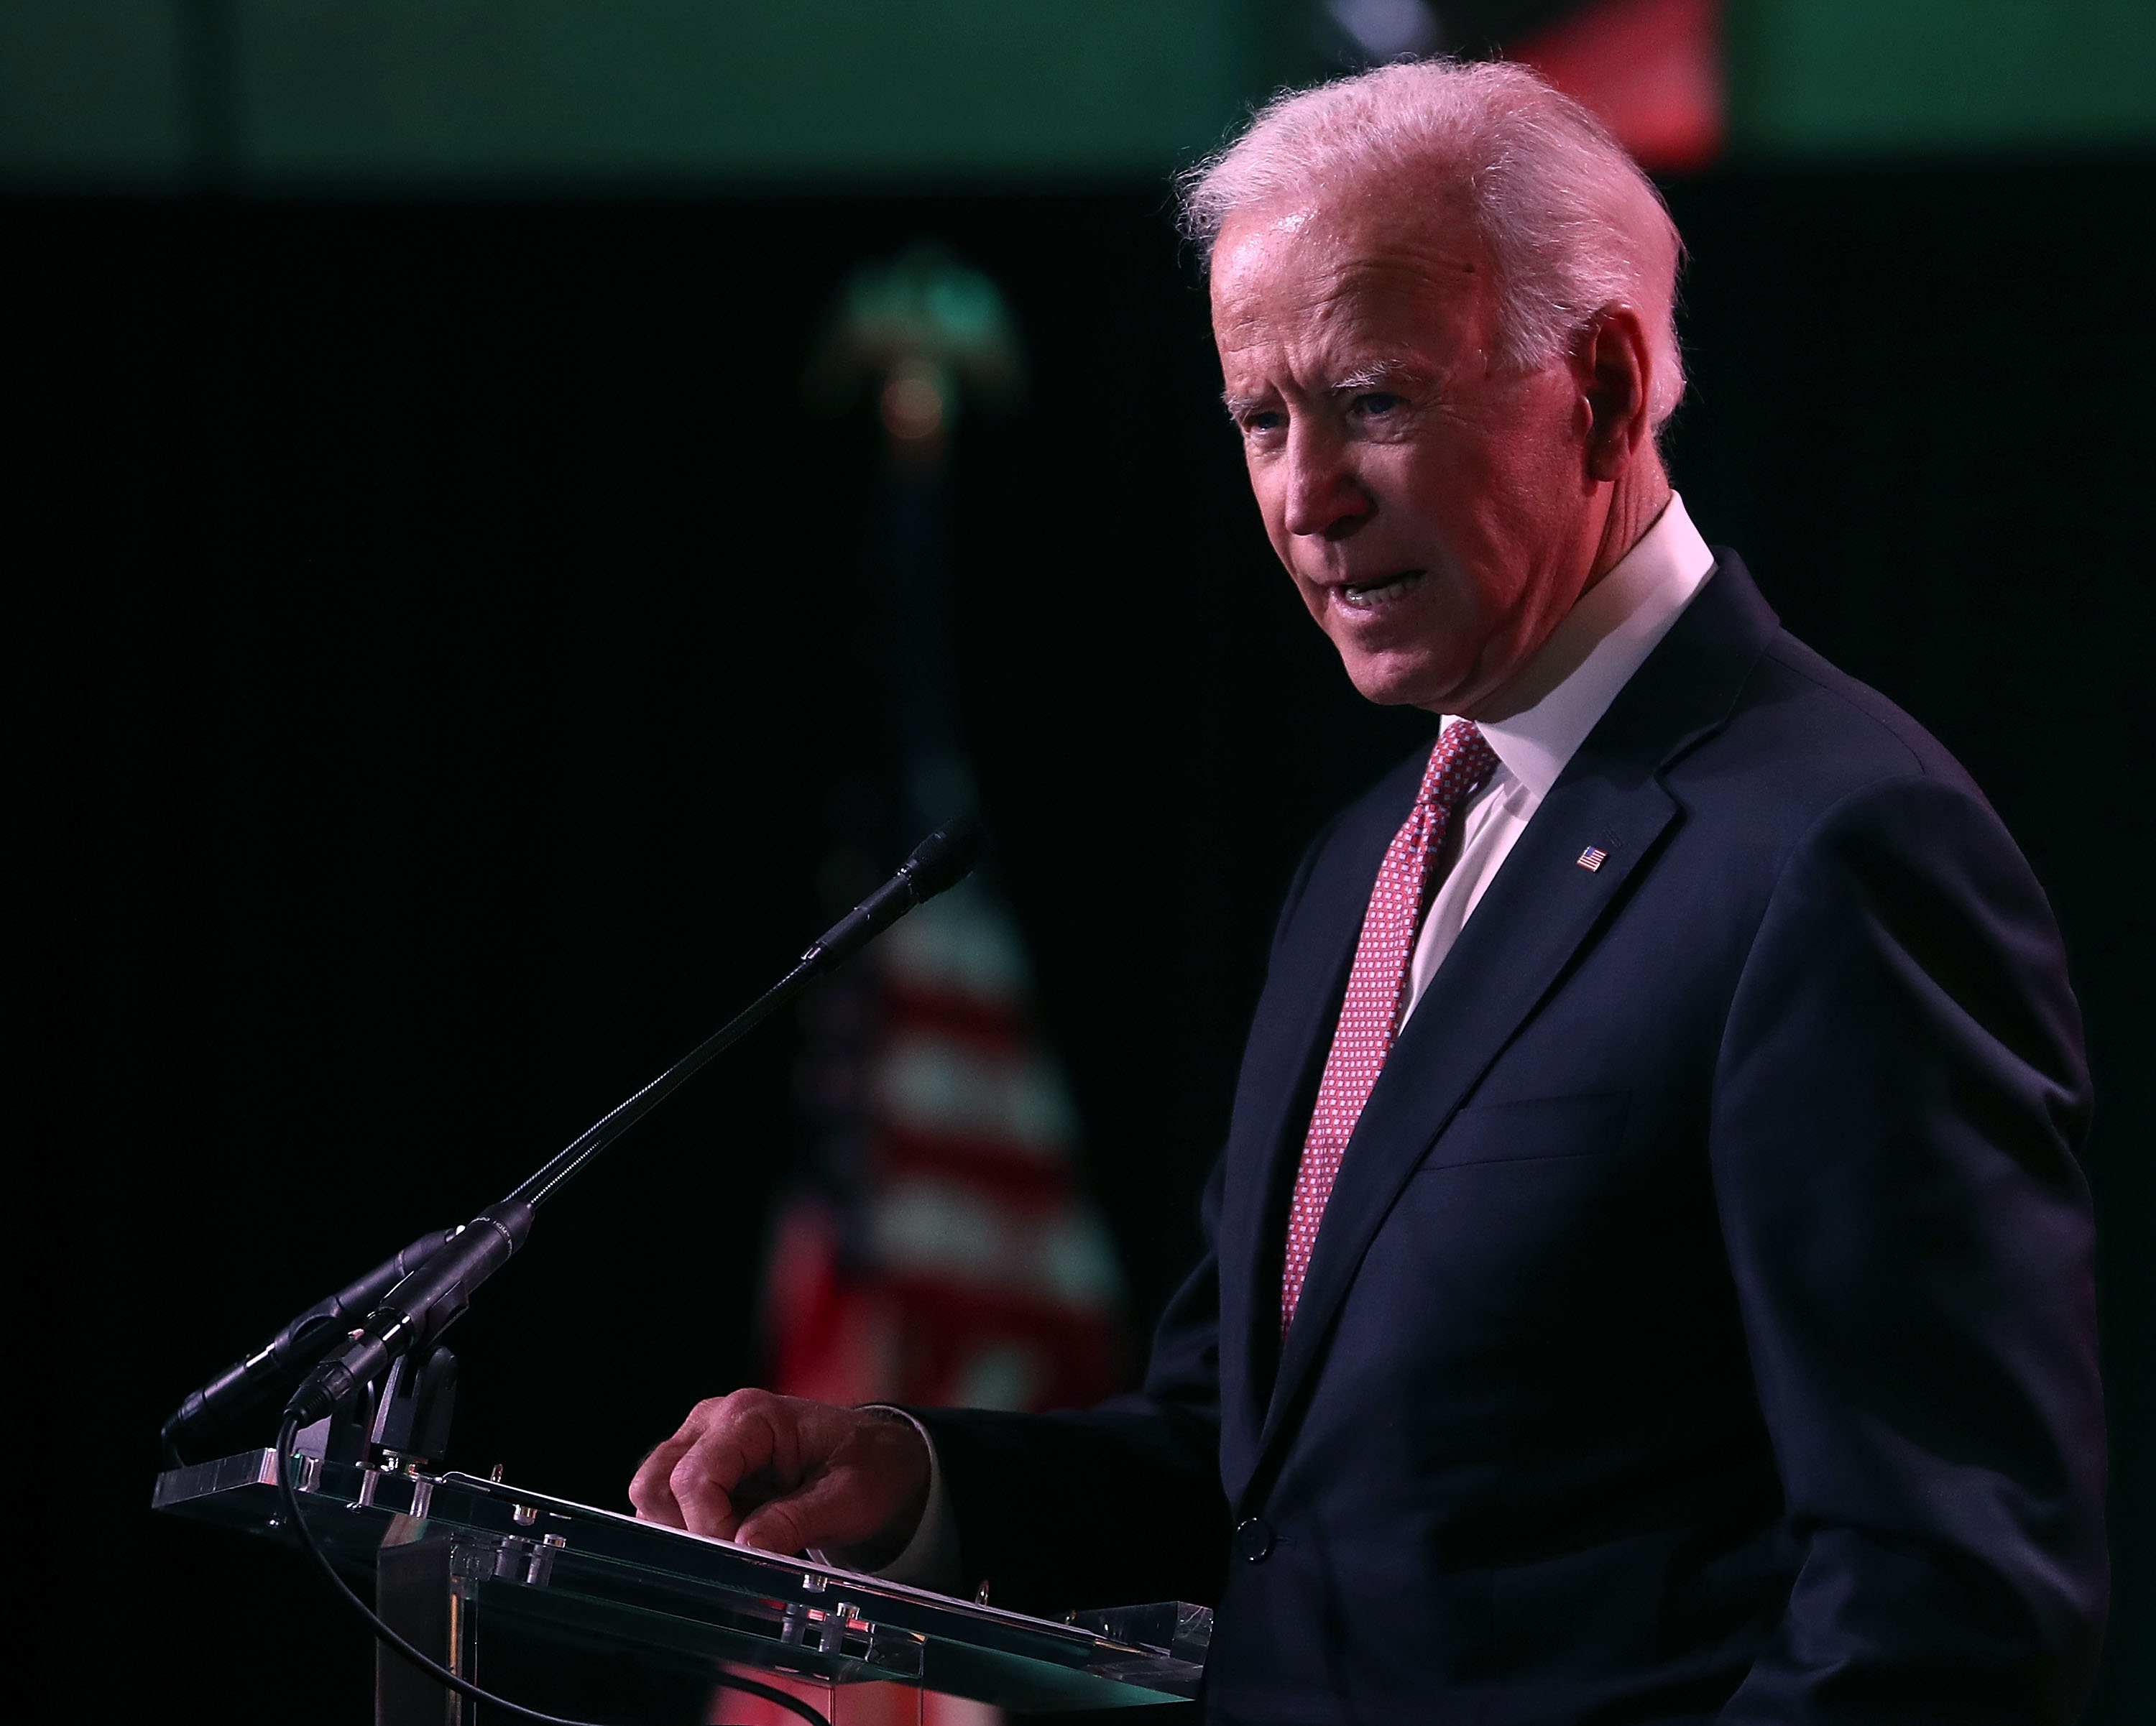 WASHINGTON, DC - JANUARY 24: Former U.S. Vice President Joe Biden speaks during the 87th United States Conference of Mayors Winter Meeting at the Capitol Hilton on January 24, 2019 in Washington, DC. (Mark Wilson/Getty Images)